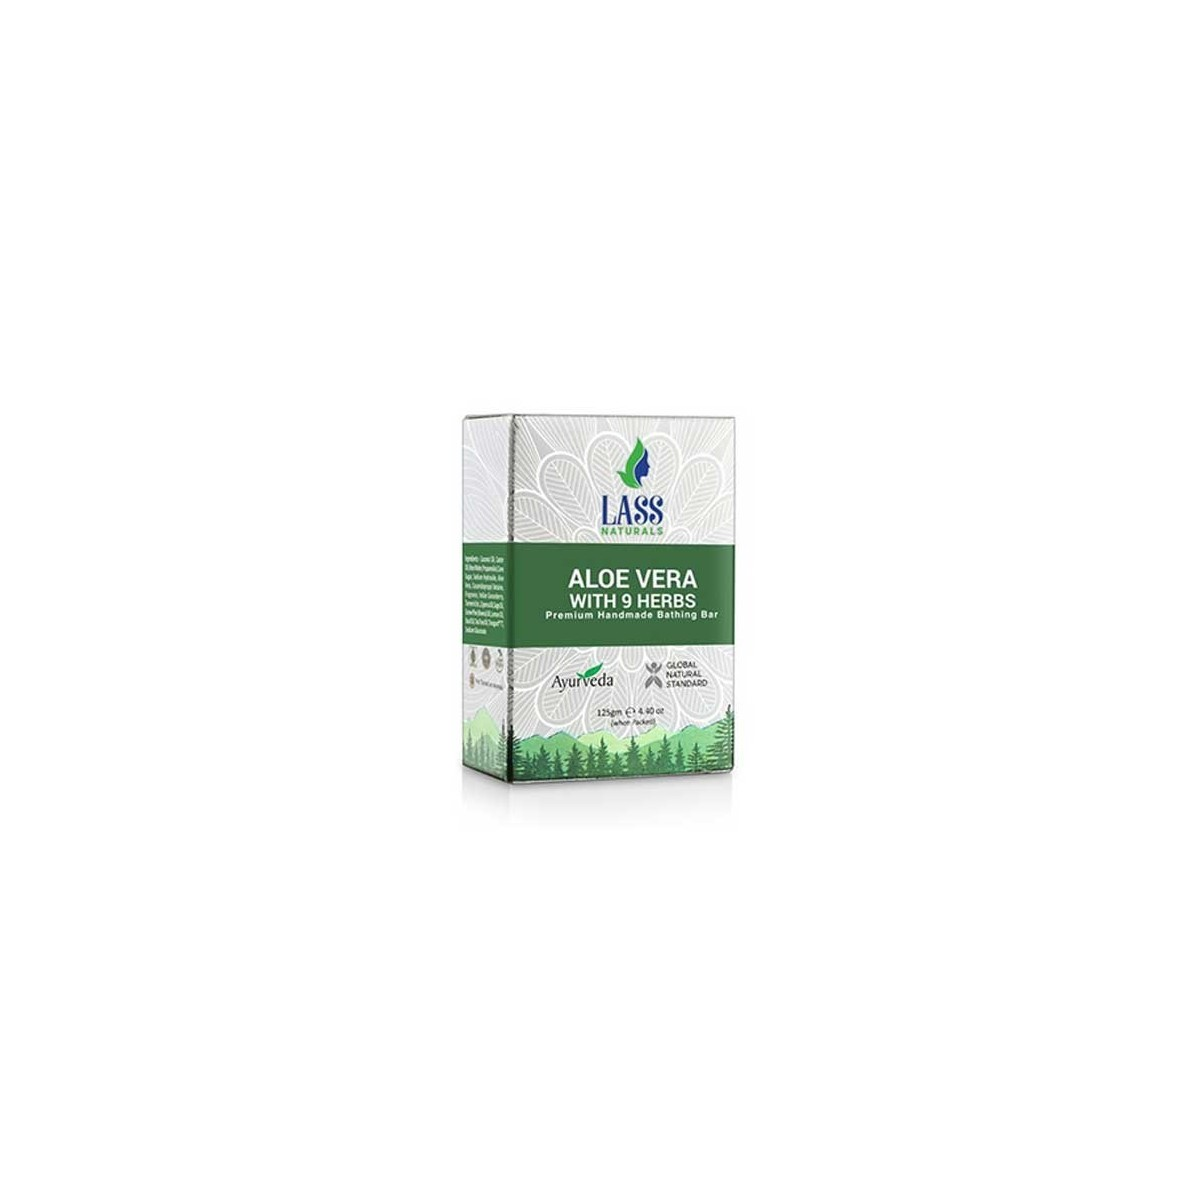 Lass Naturals Aloe Vera With 9 Herbs Soap